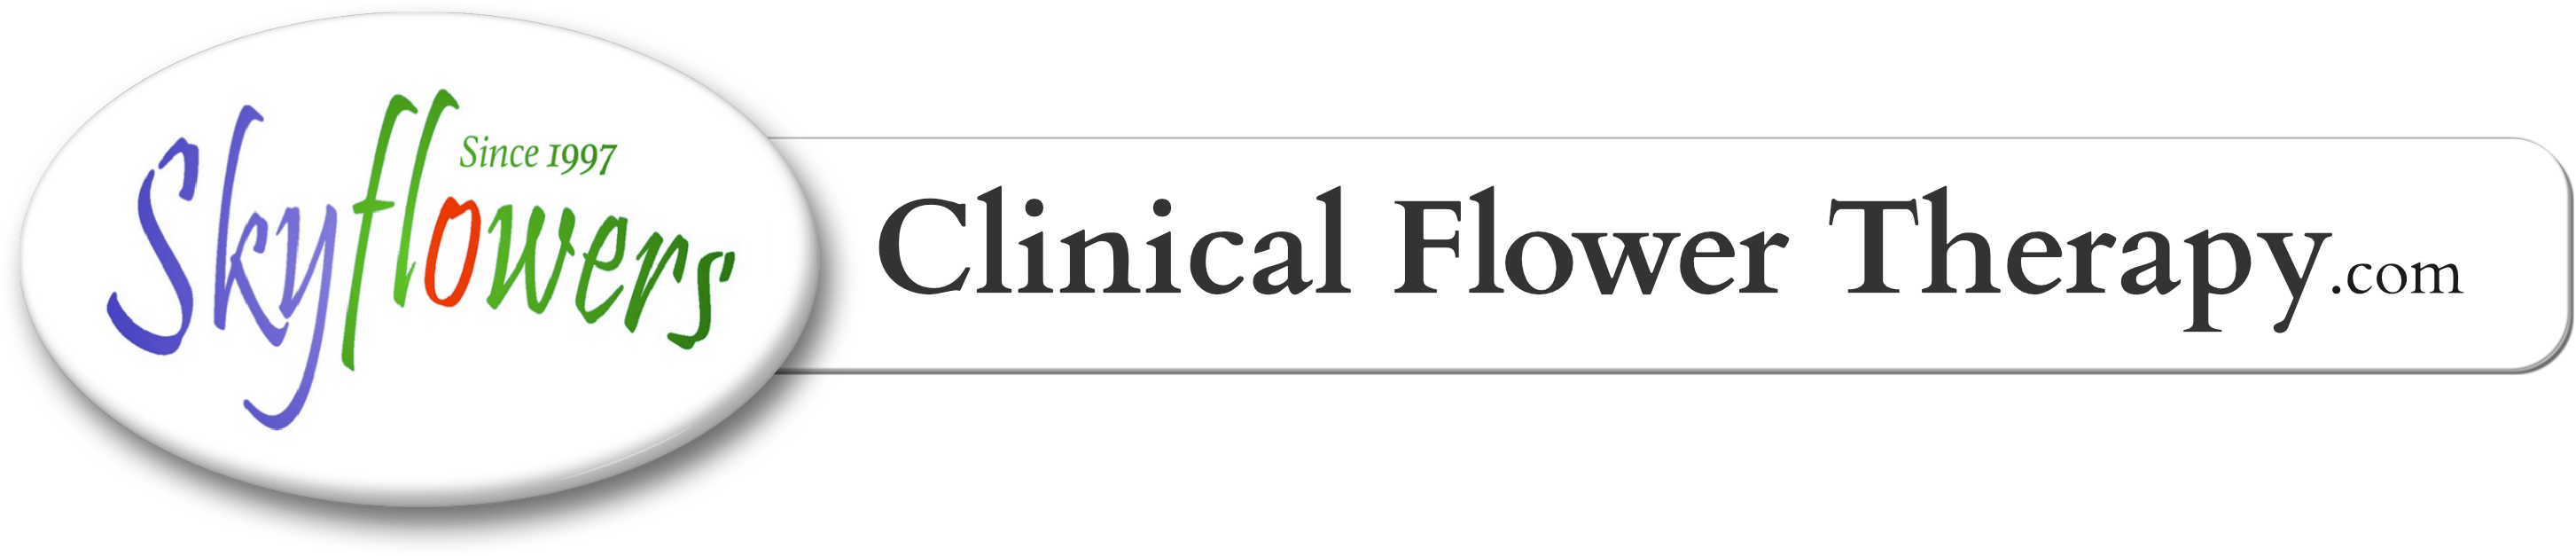 Clinical Flower Therapy